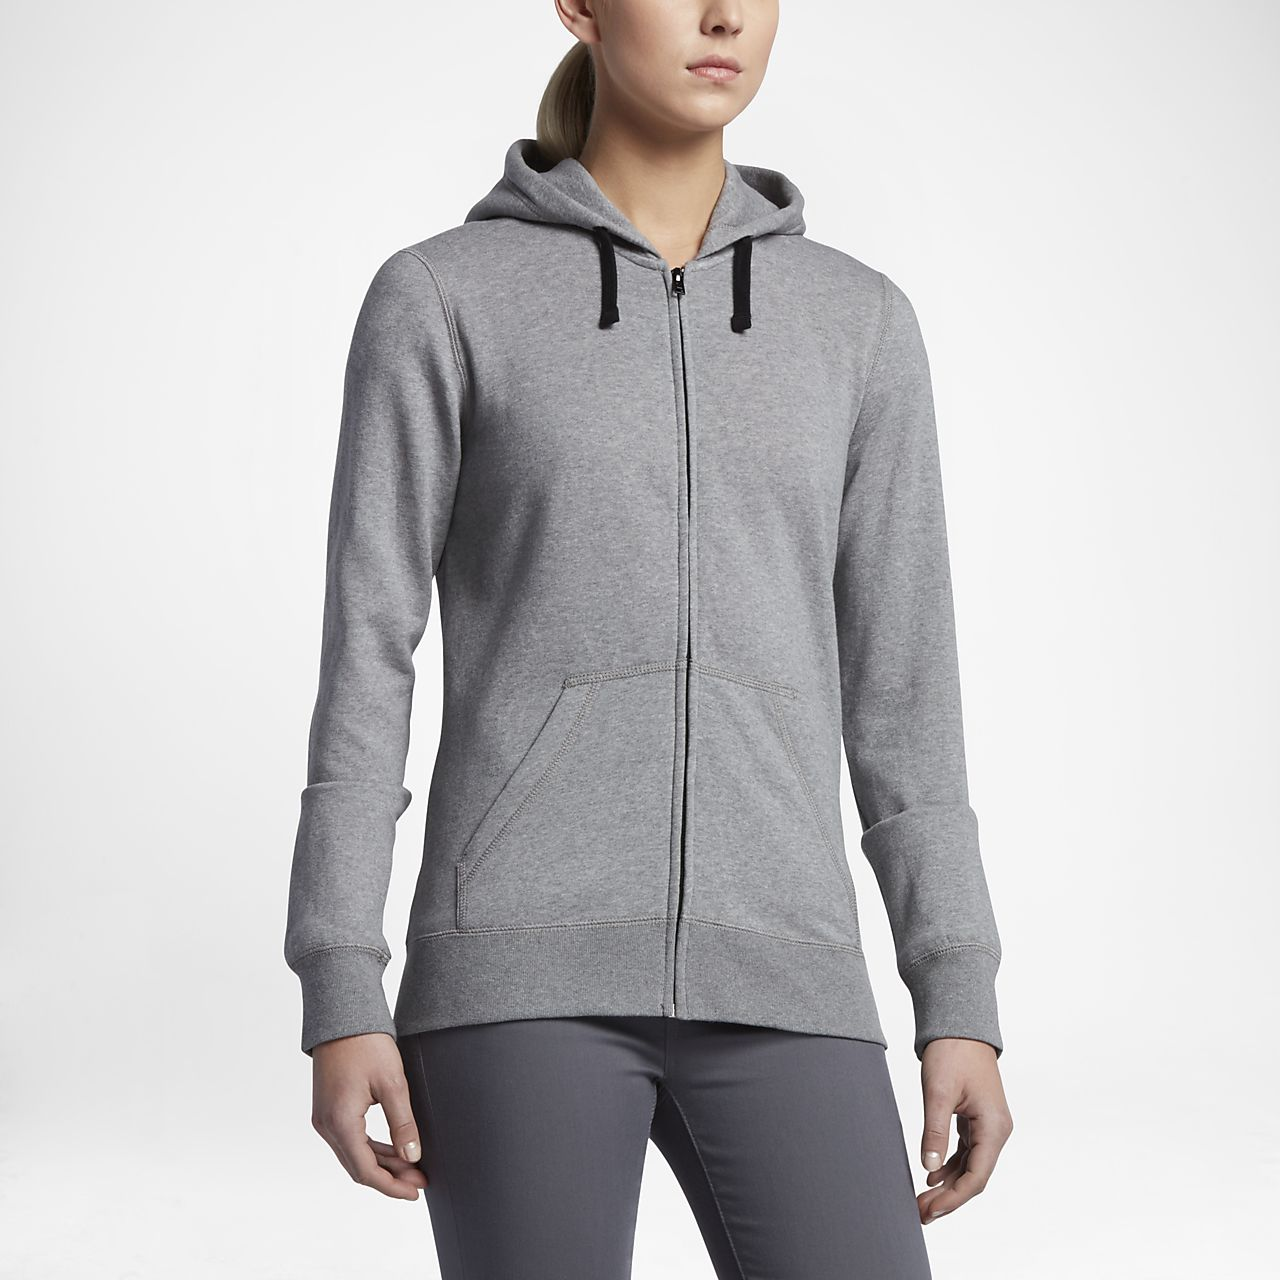 Hurley Solid Icon Zip Fleece Women's Hoodies Cool Grey